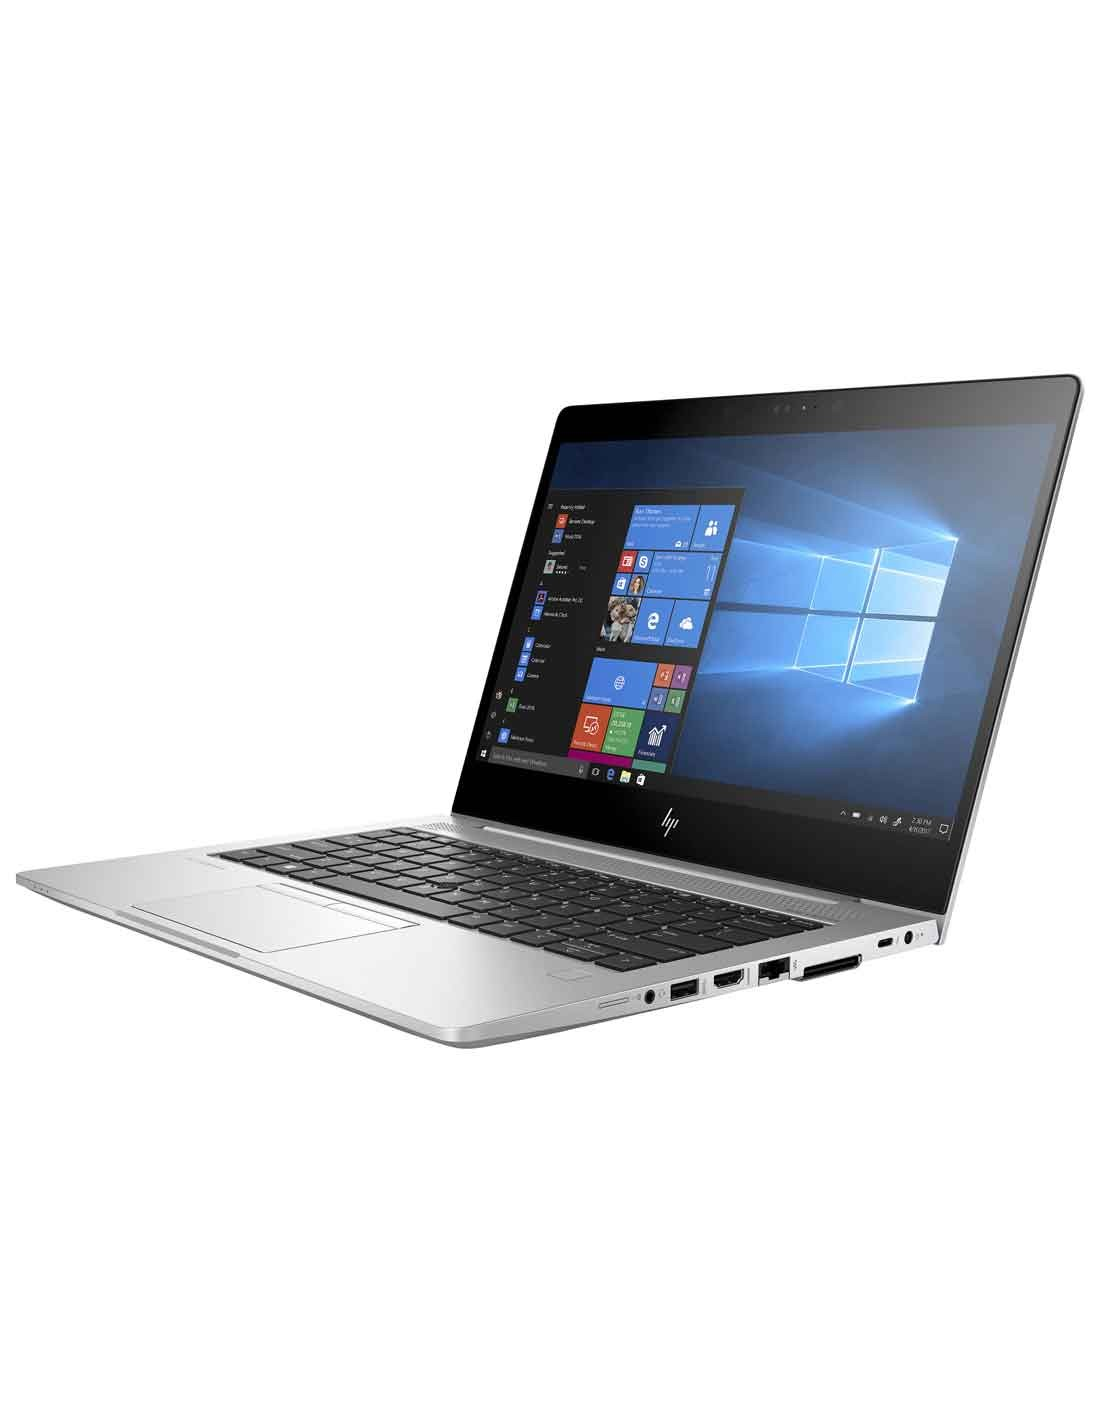 HP EliteBook 840 G5 Notebook 1TB SSD images and photos